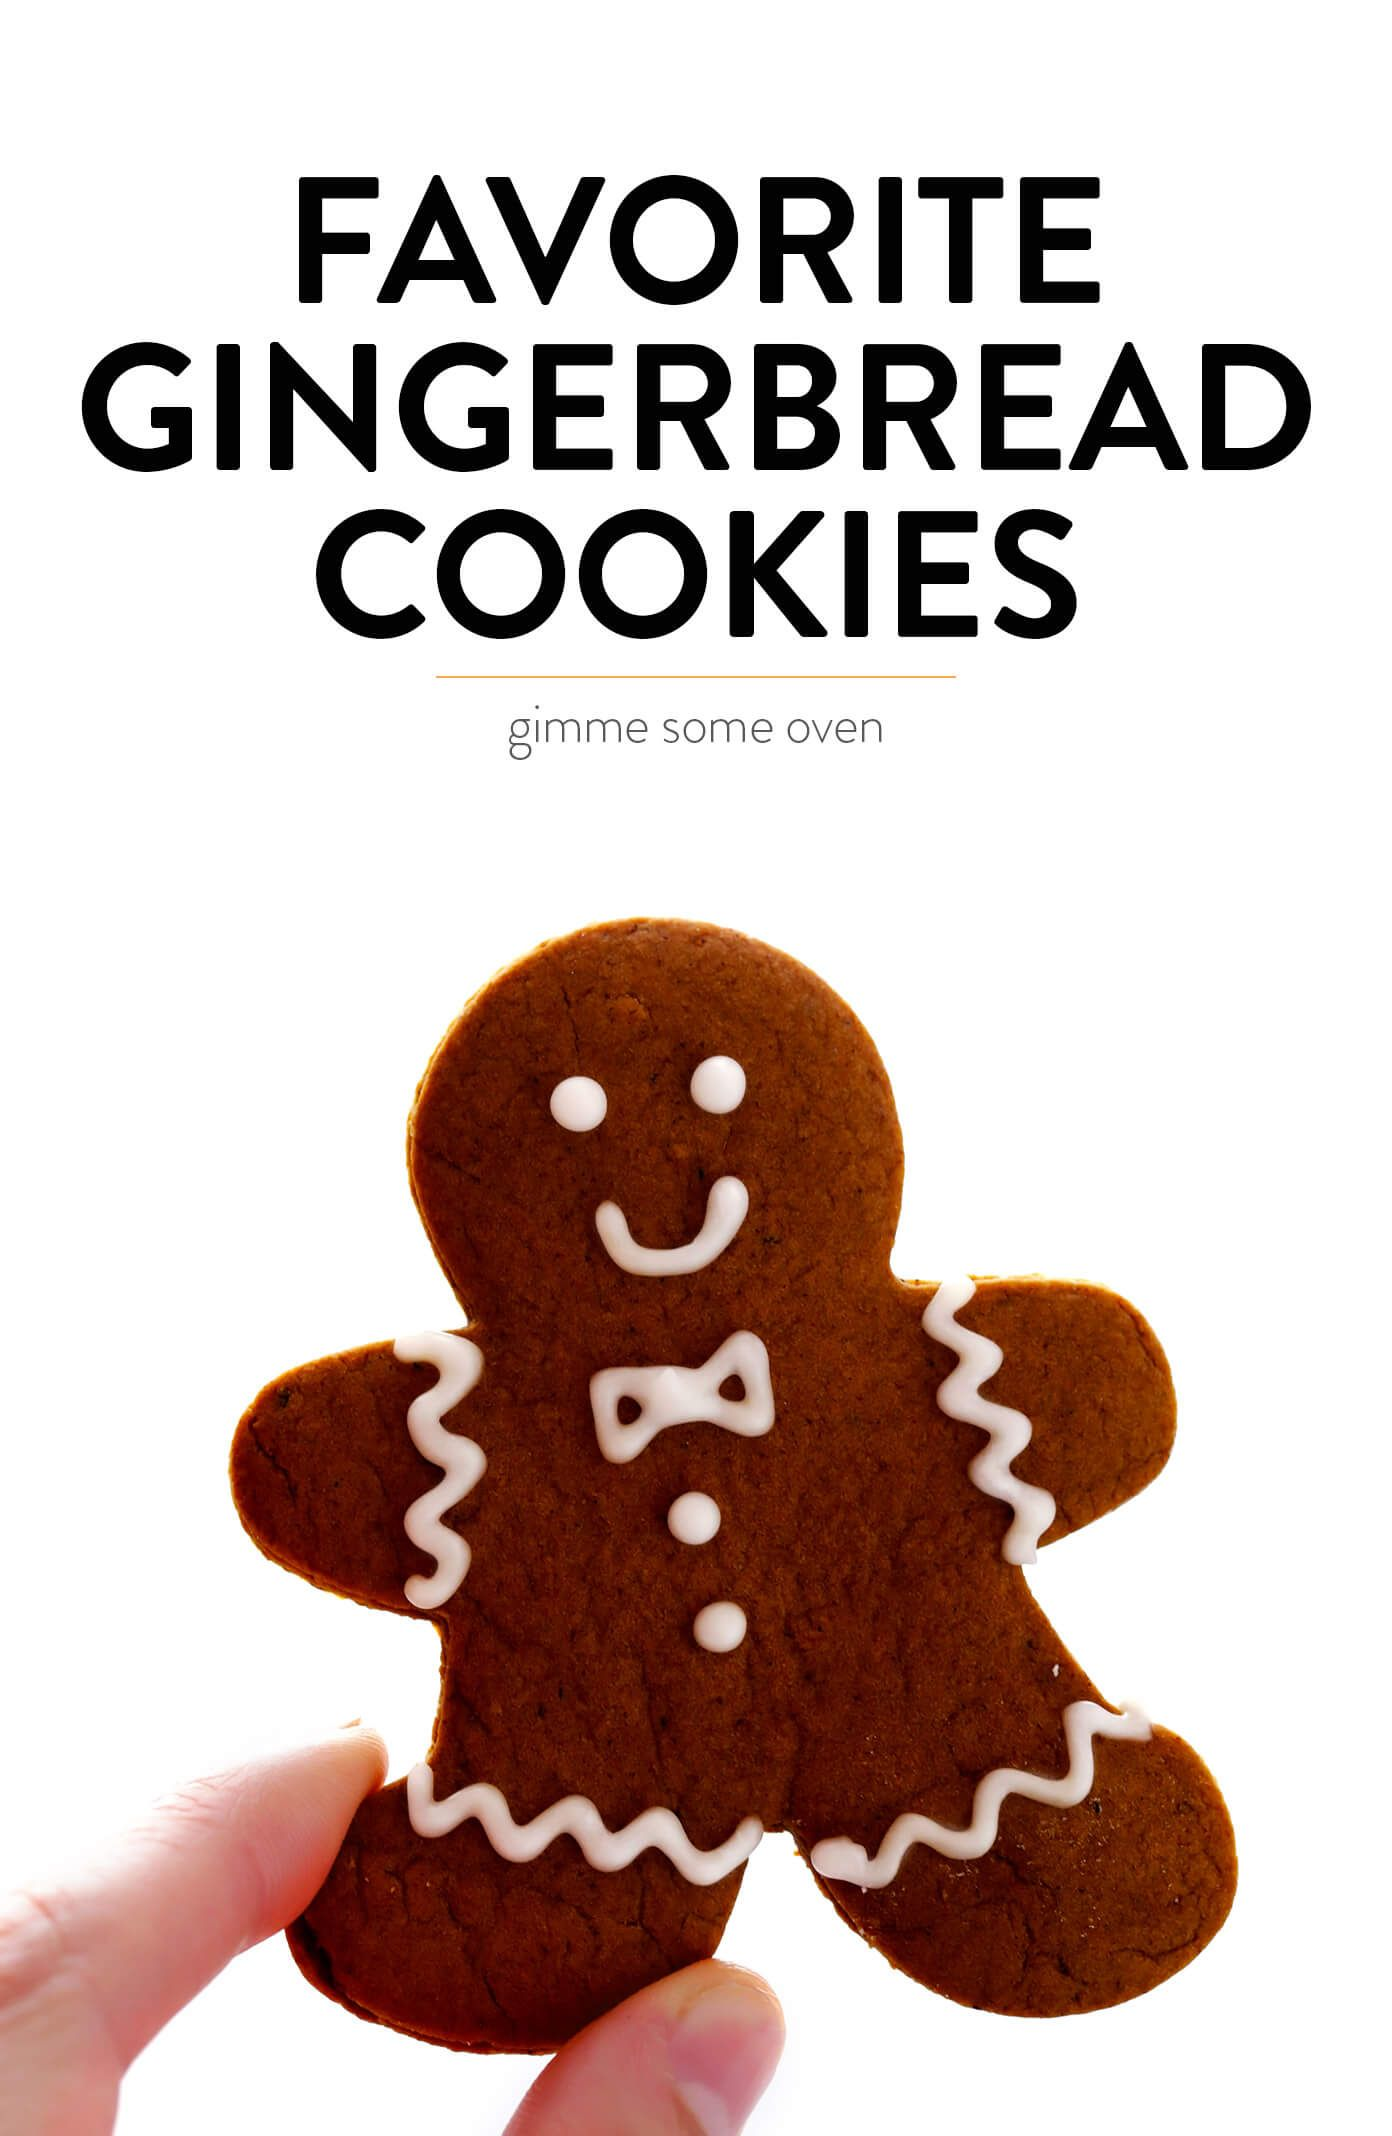 Gingerbread Cookies My favorite Gingerbread Cookies recipe! It's easy to make as soft or as crispy as you'd like, the cookies are easy to cut out and decorate, and they are perfect for the holidays! | Gimme Some Oven